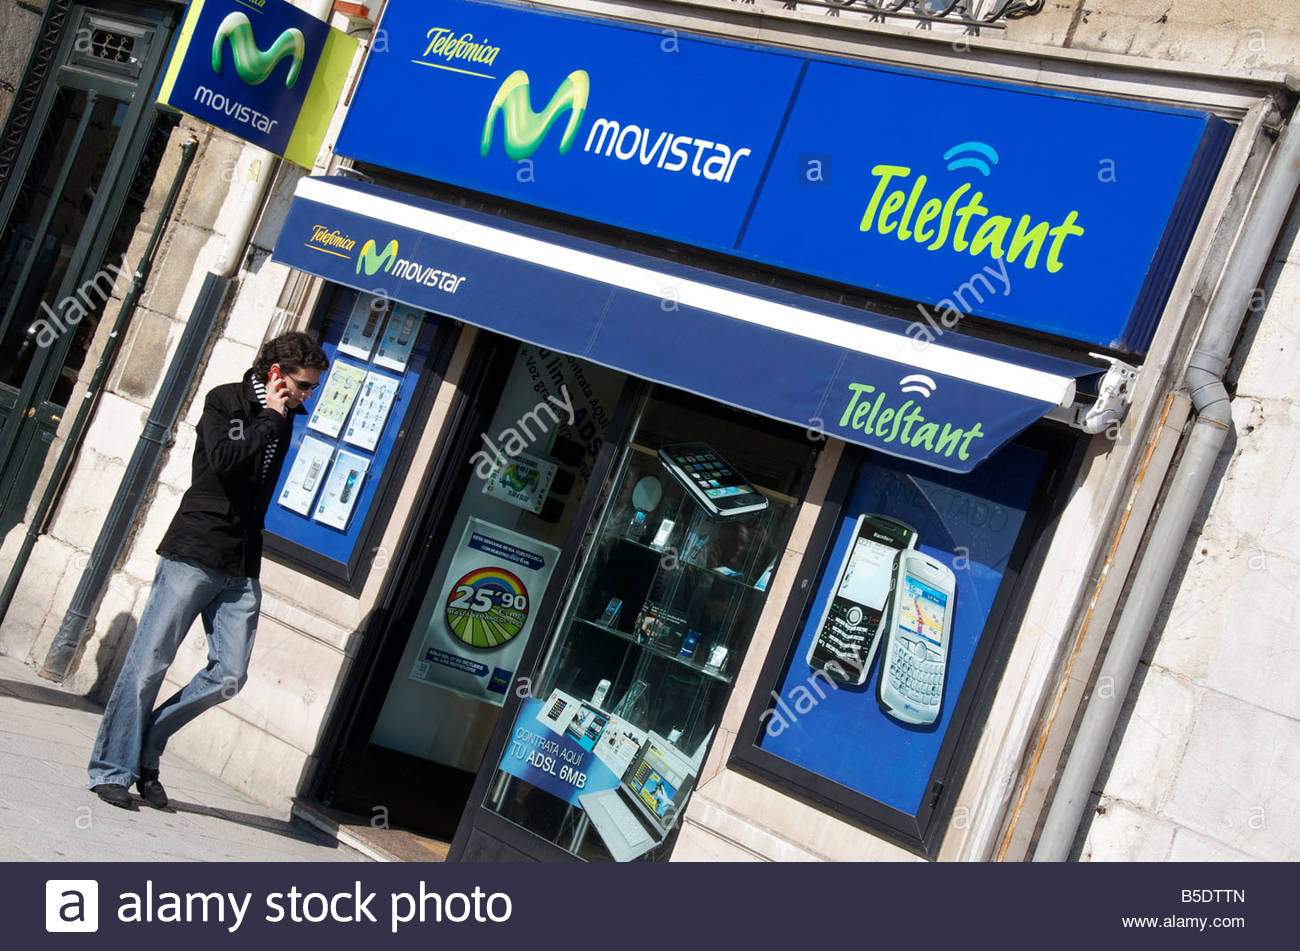 A branch of spanish mobile phone company Telefonica Movistar. - Stock Image